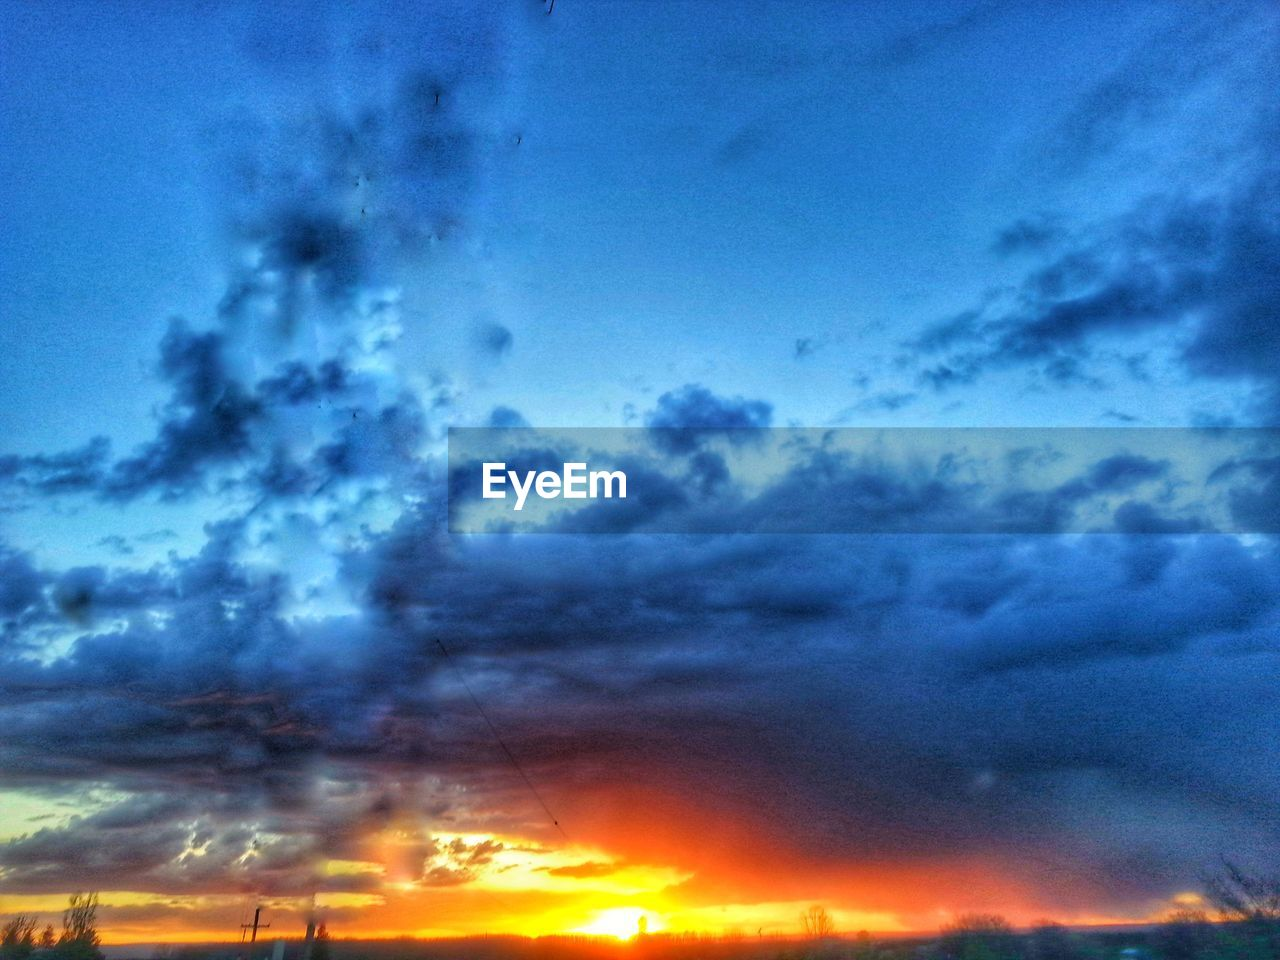 sky, nature, cloud - sky, sunset, beauty in nature, no people, dramatic sky, scenics, outdoors, tranquility, low angle view, blue, day